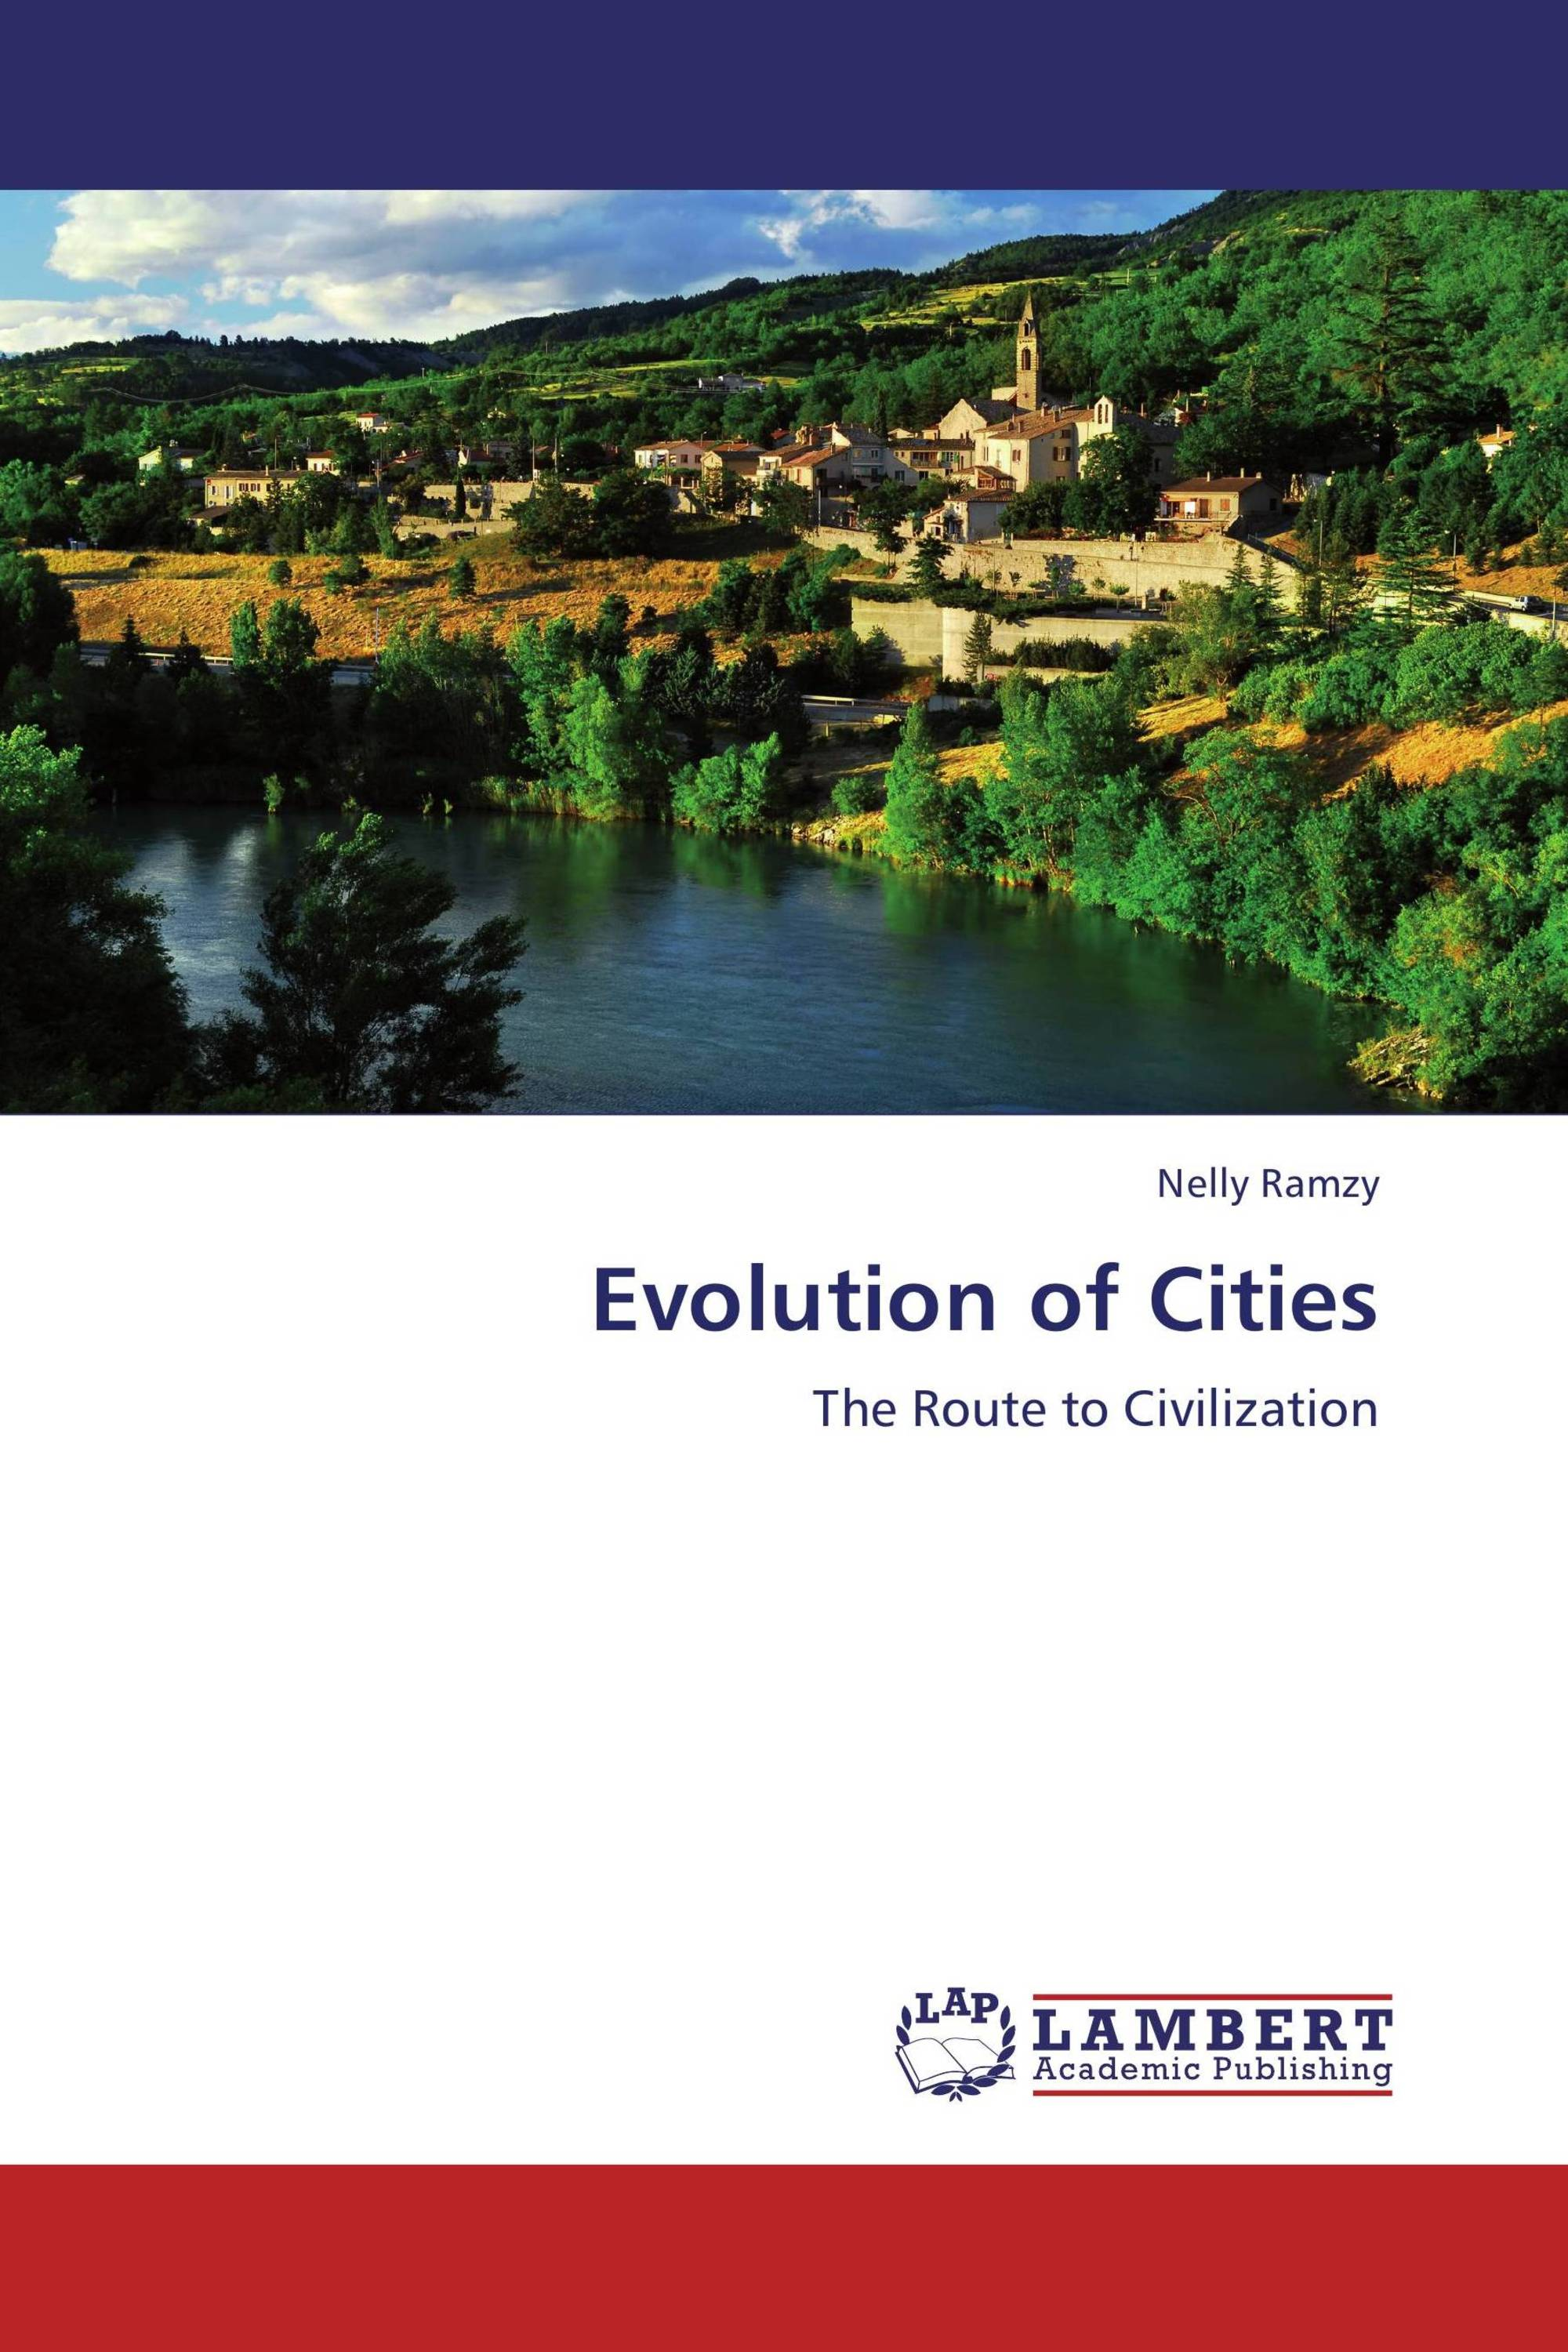 evolution of cities as a catalyst to civilization essay